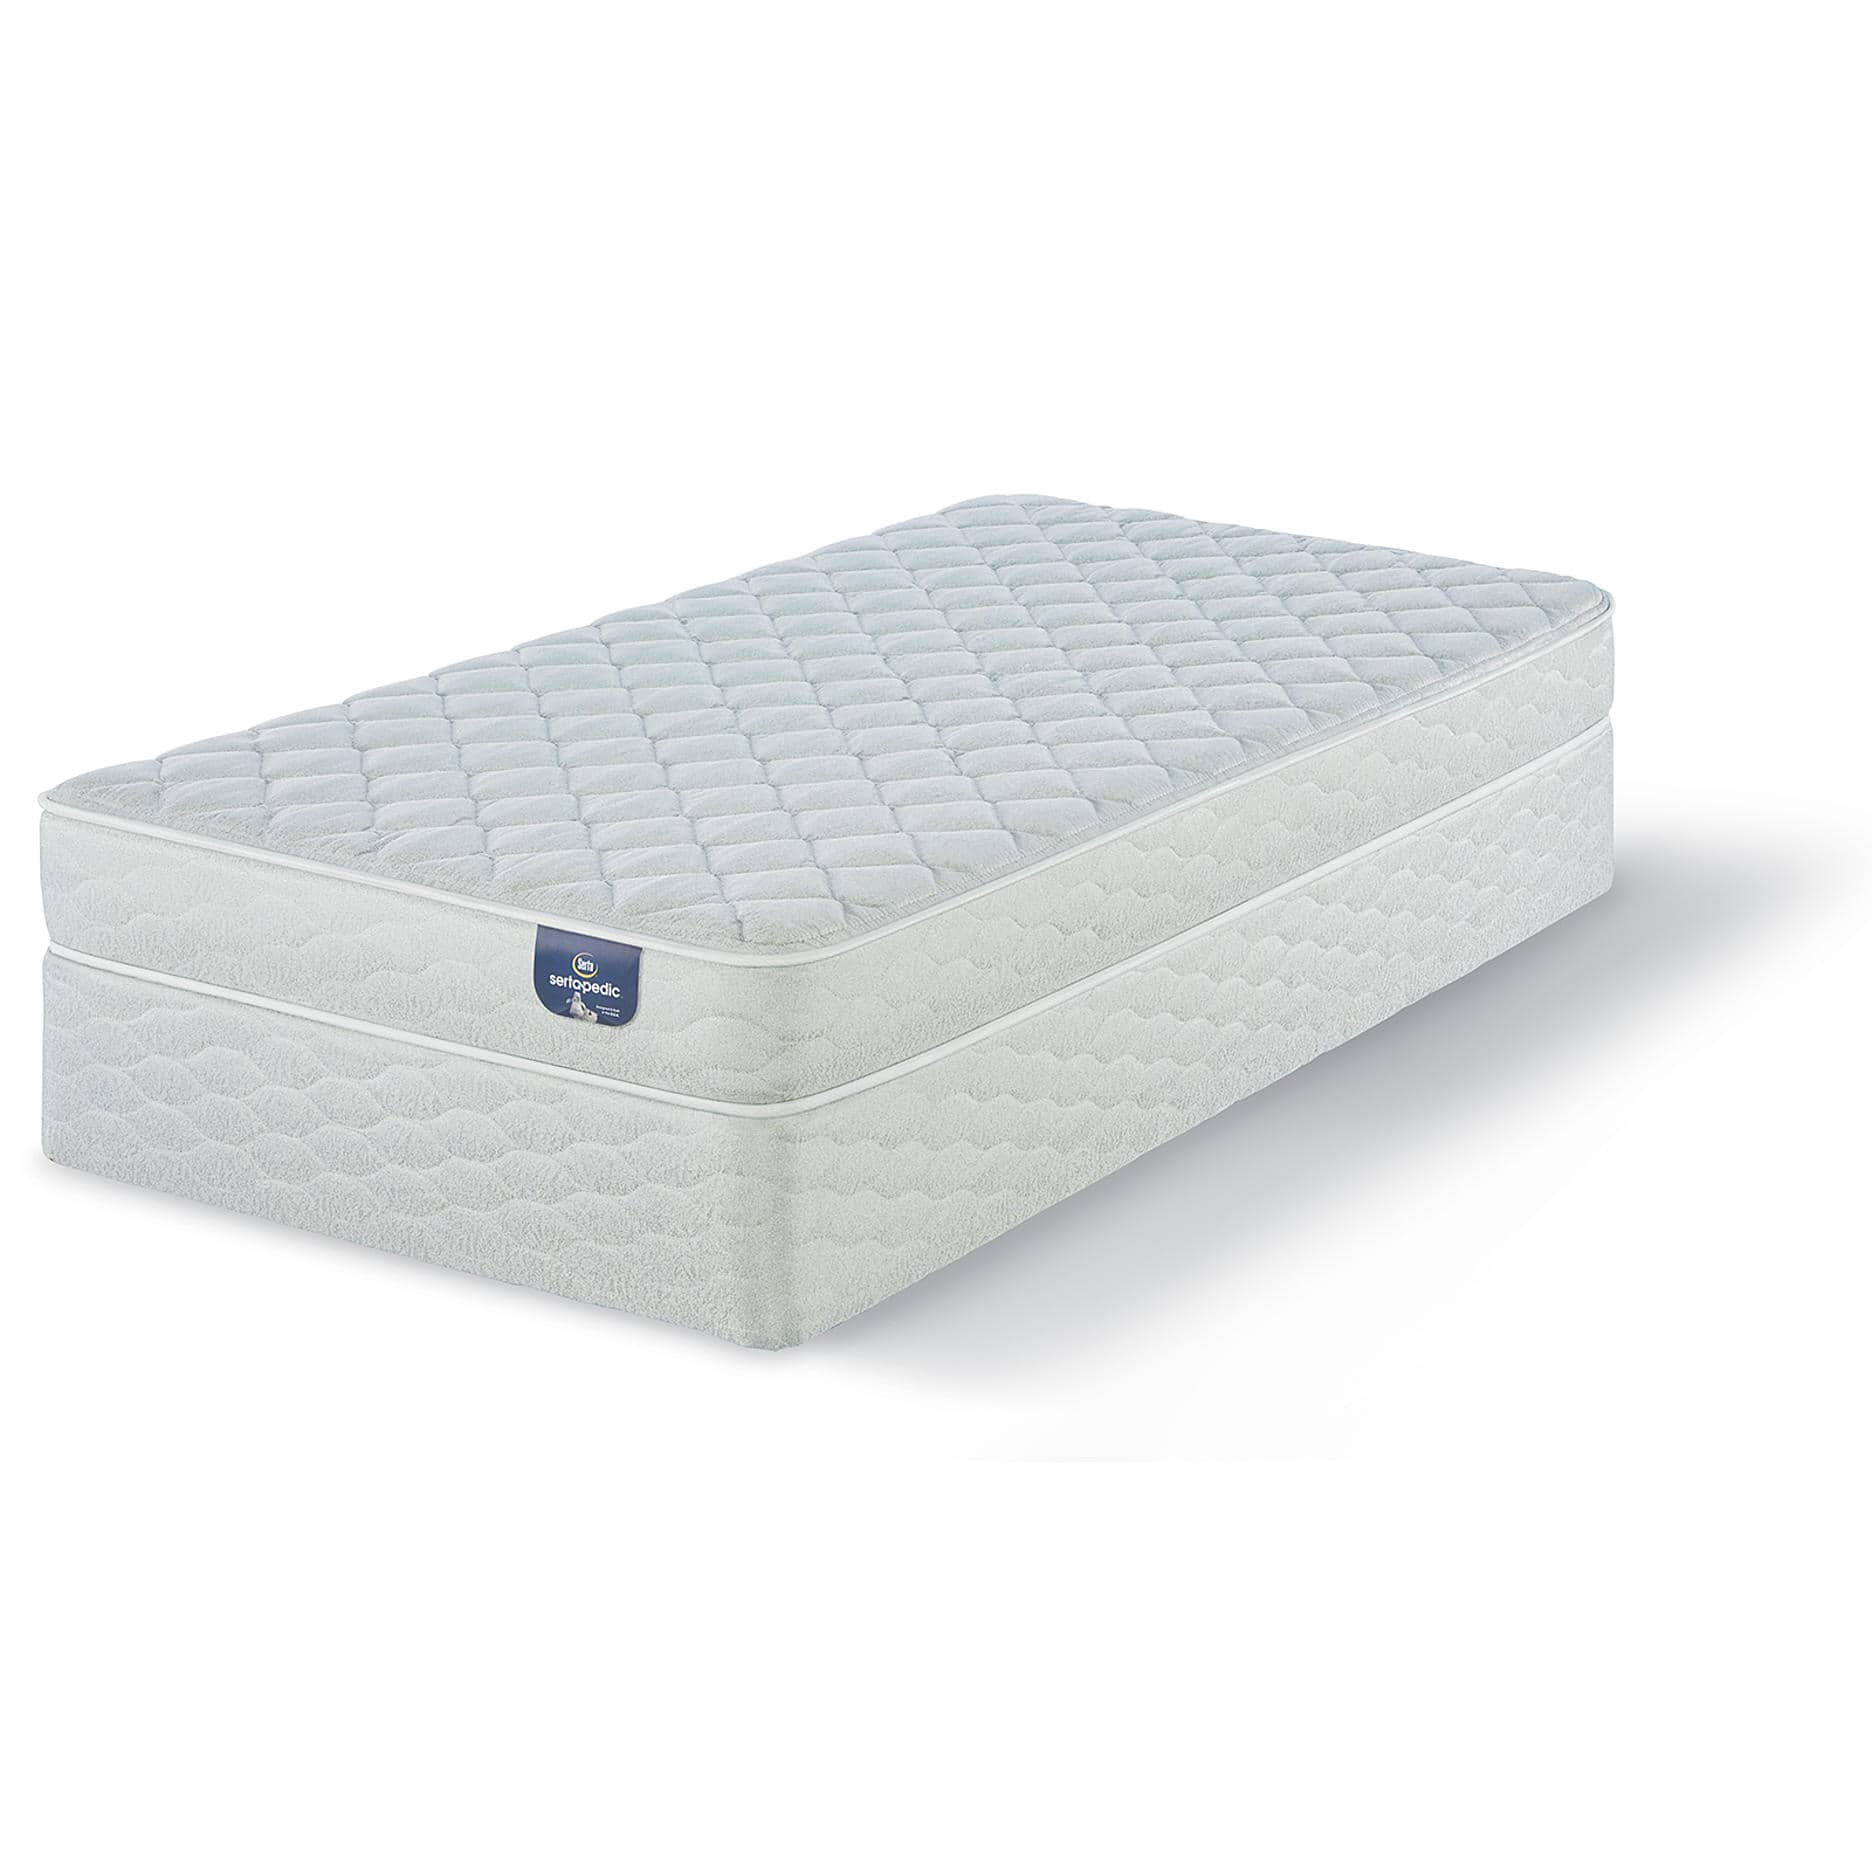 Twin Box Spring On Sale Full Size Of Crib Mattress Cheap Mattress Online Good Mattress Air